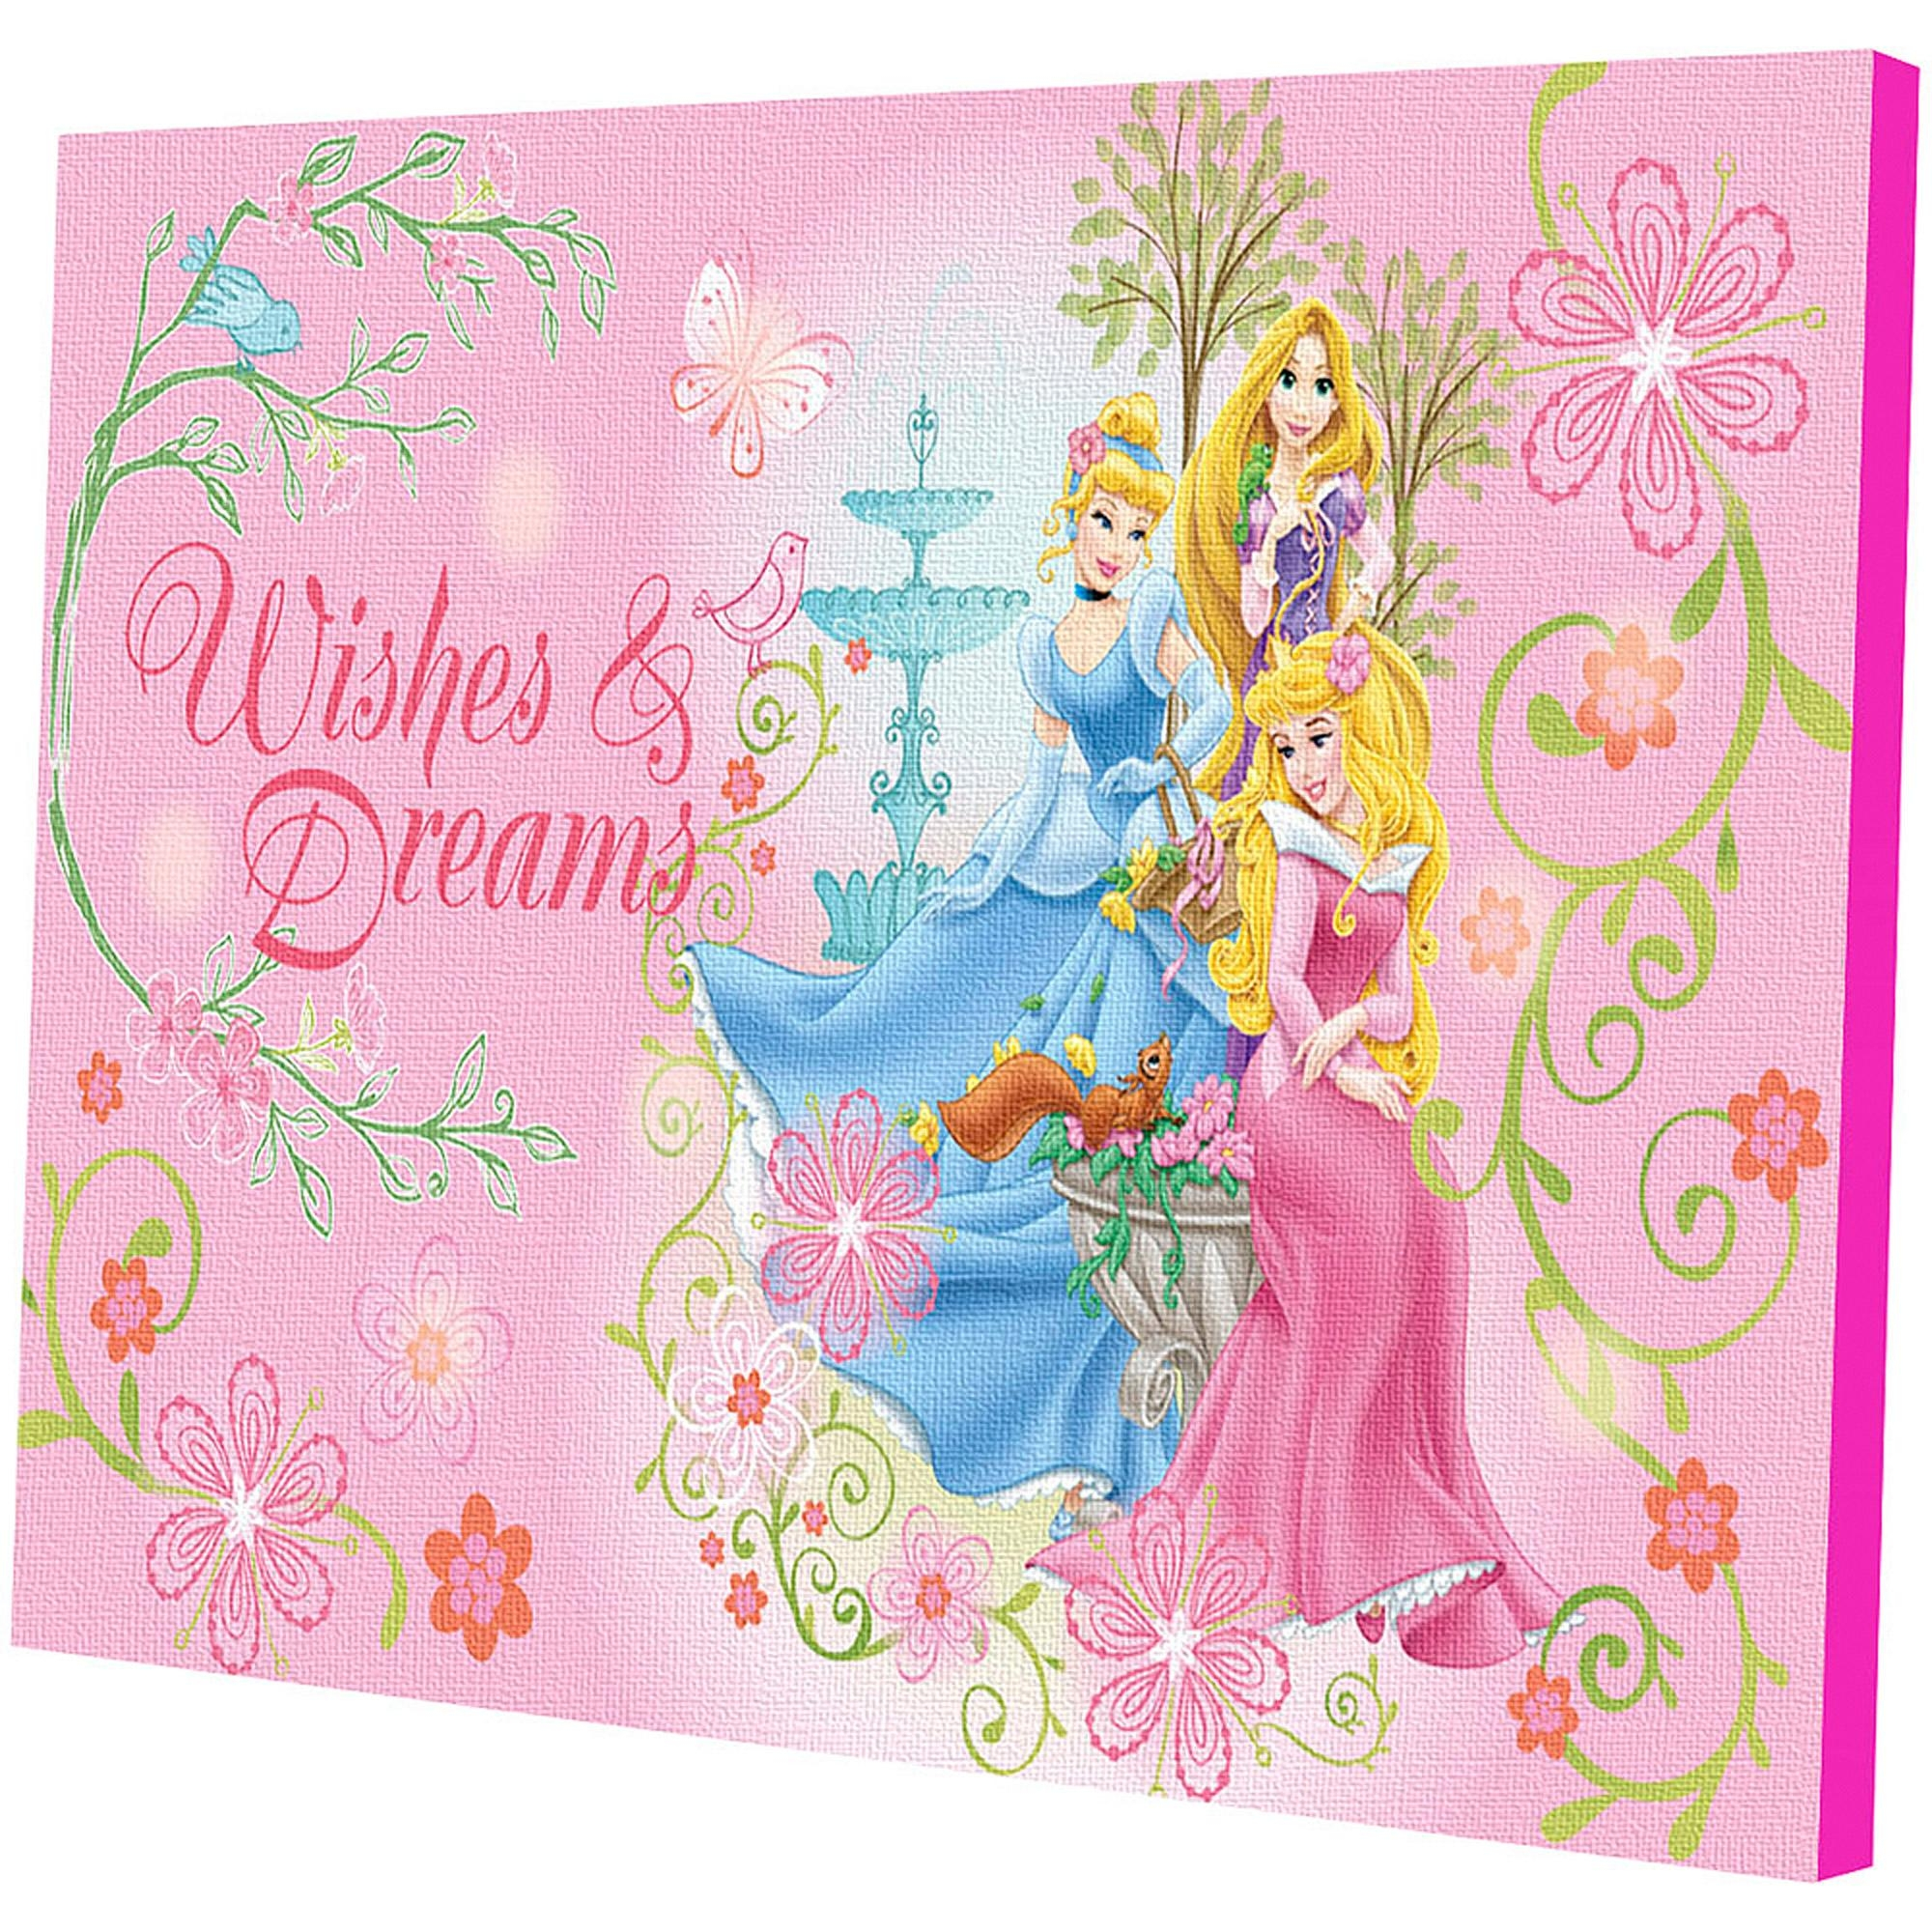 Disney Princess Led Light Up Canvas Wall Art – Walmart Intended For Princess Canvas Wall Art (Image 10 of 20)